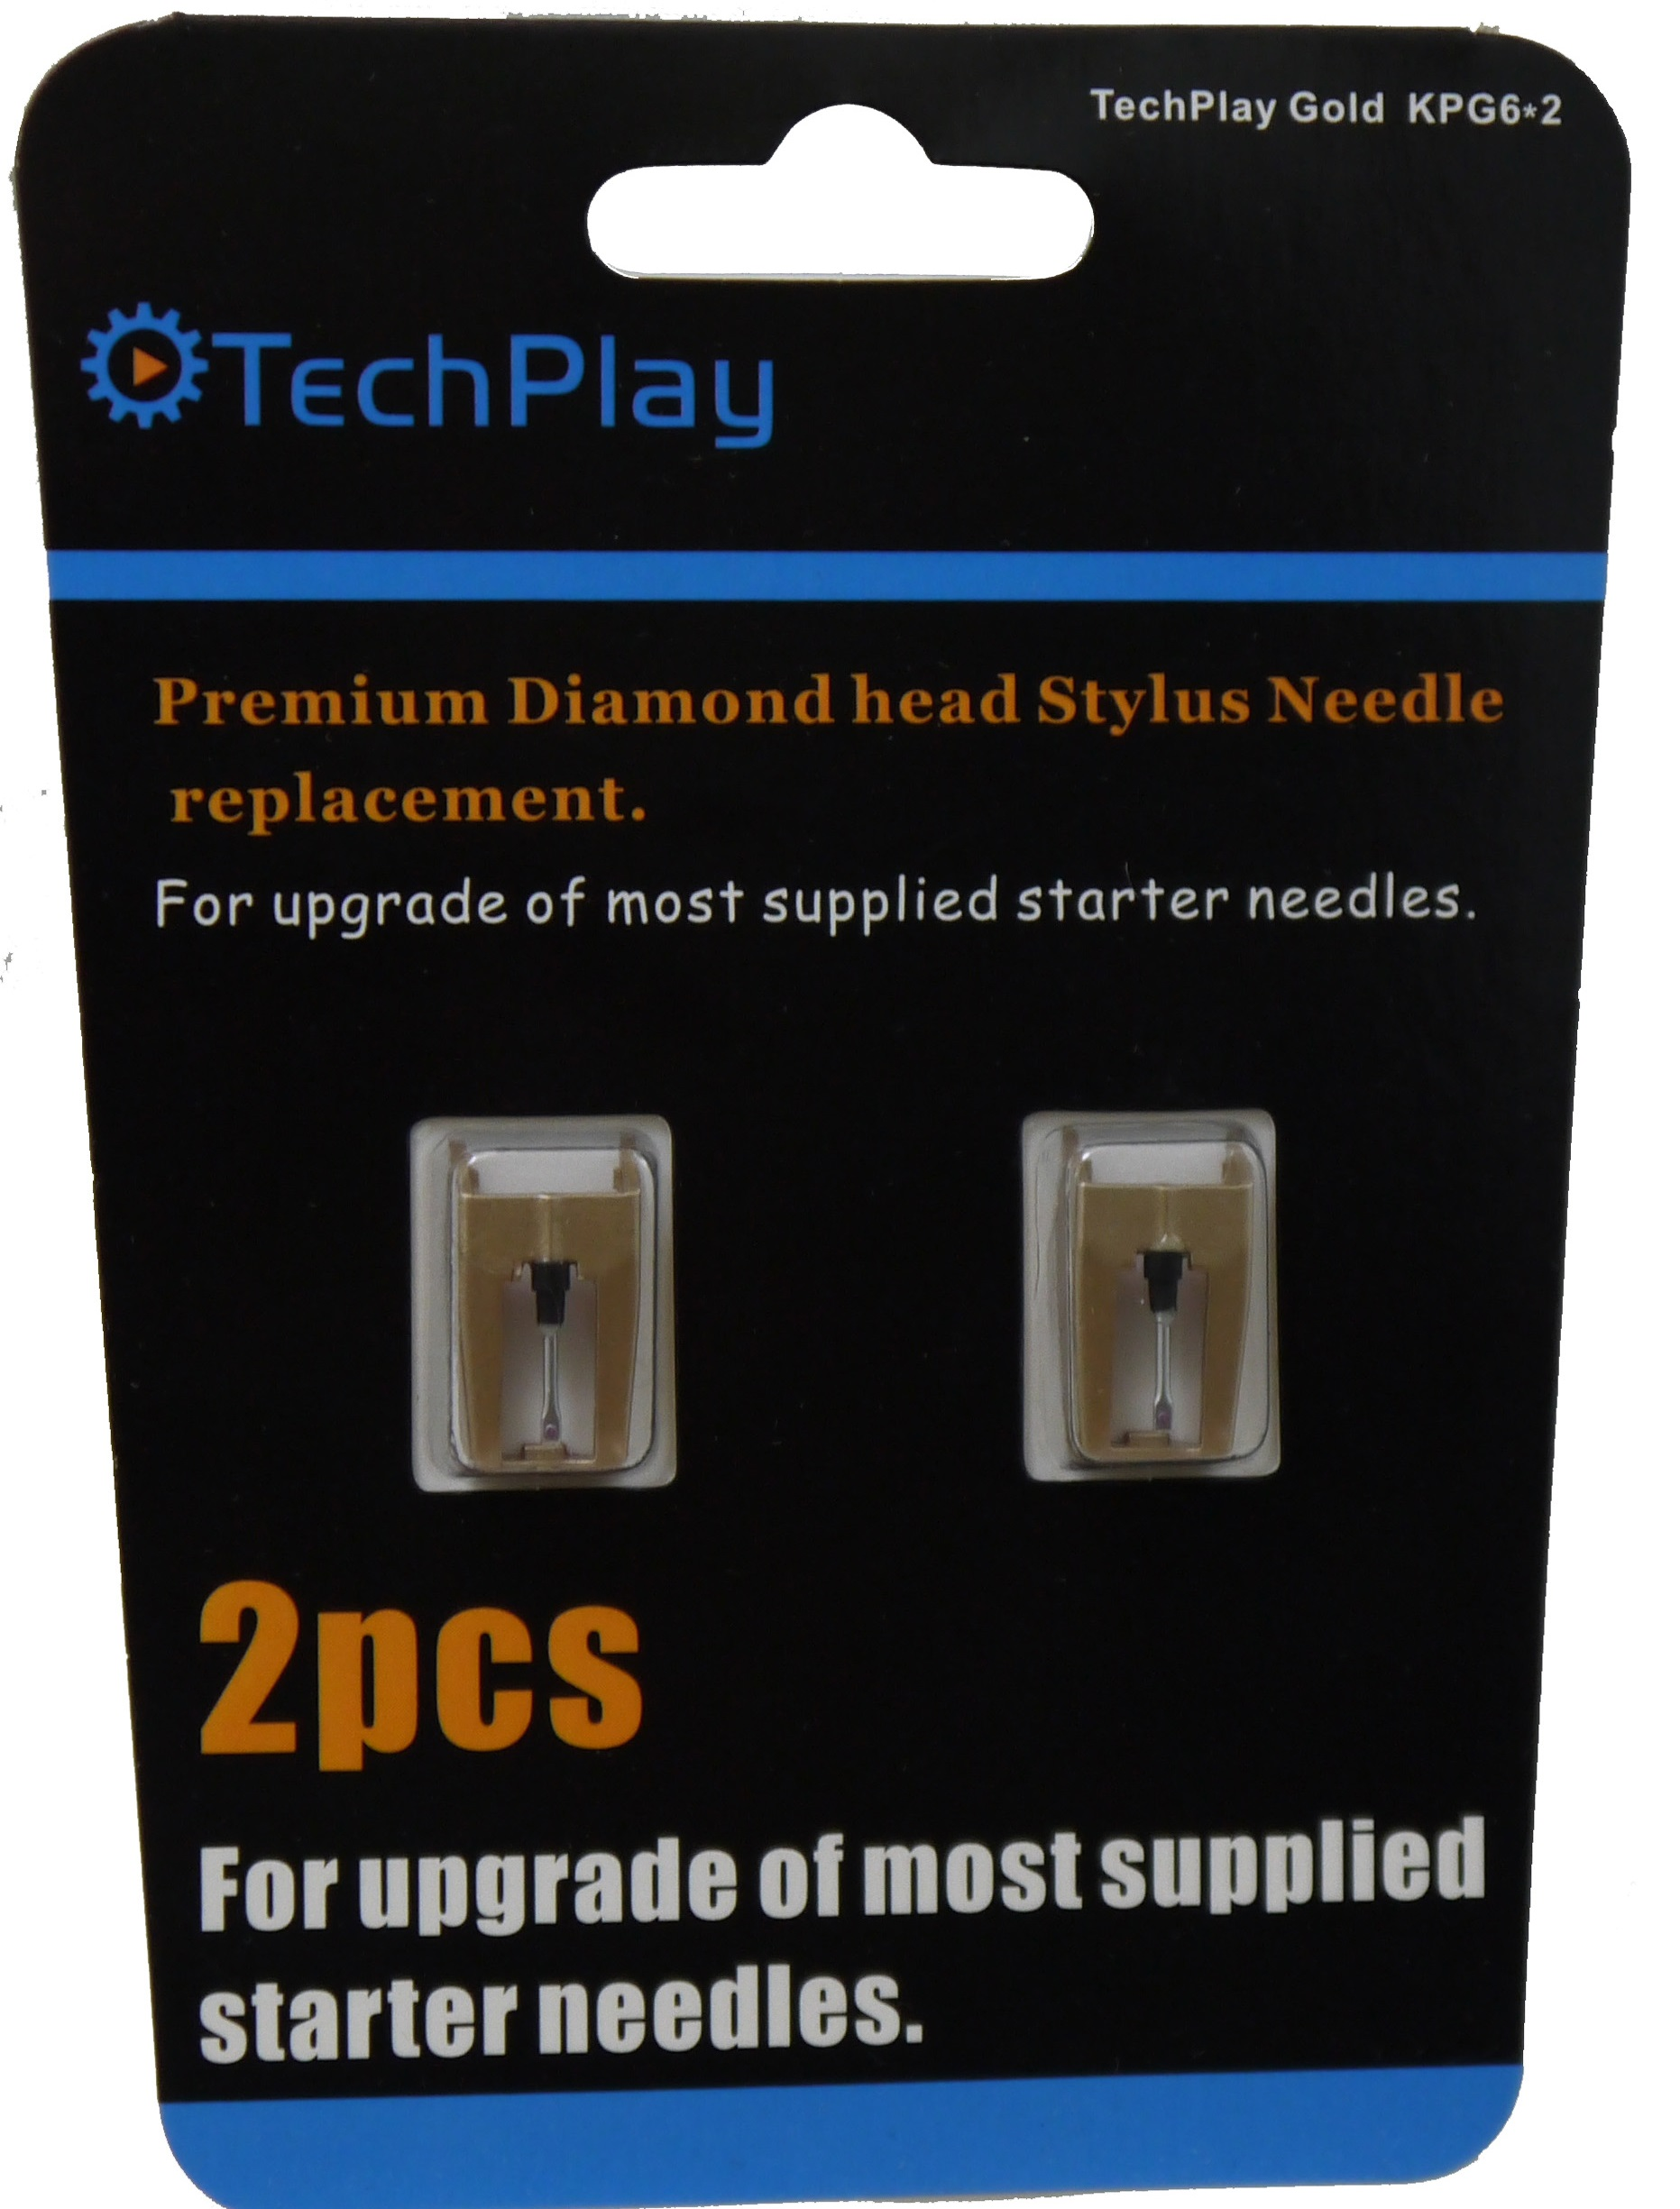 TechPlay Gold, KPG6*2,pack of 2, Dimond tipped needle for Turnta